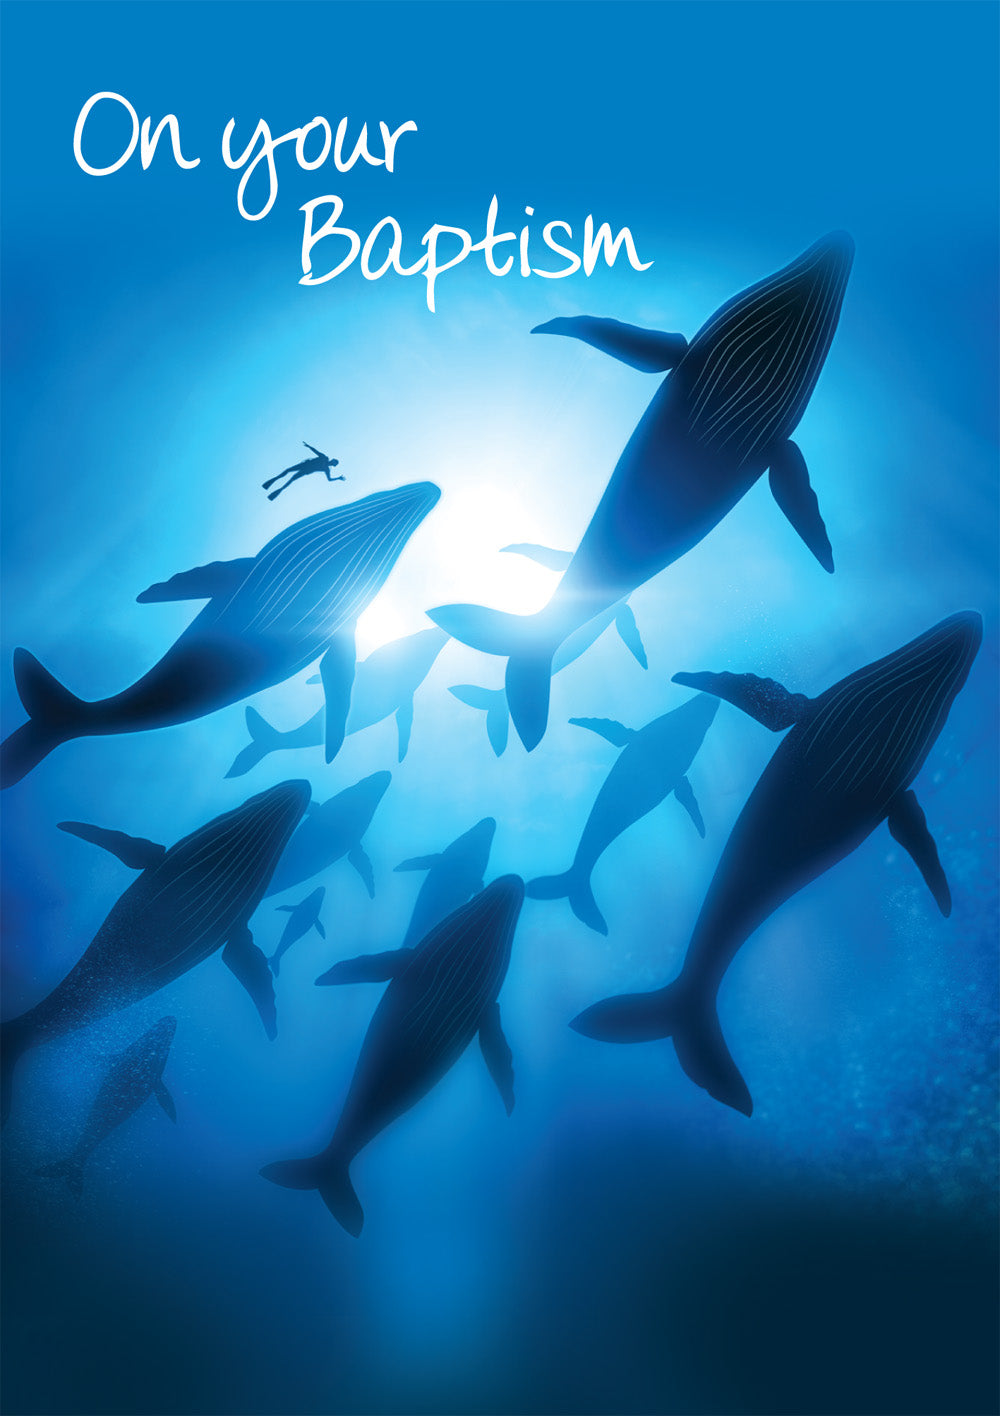 On Your Baptism - Whales (Adult)  -  Standard CardOn Your Baptism - Whales (Adult)  -  Standard Card